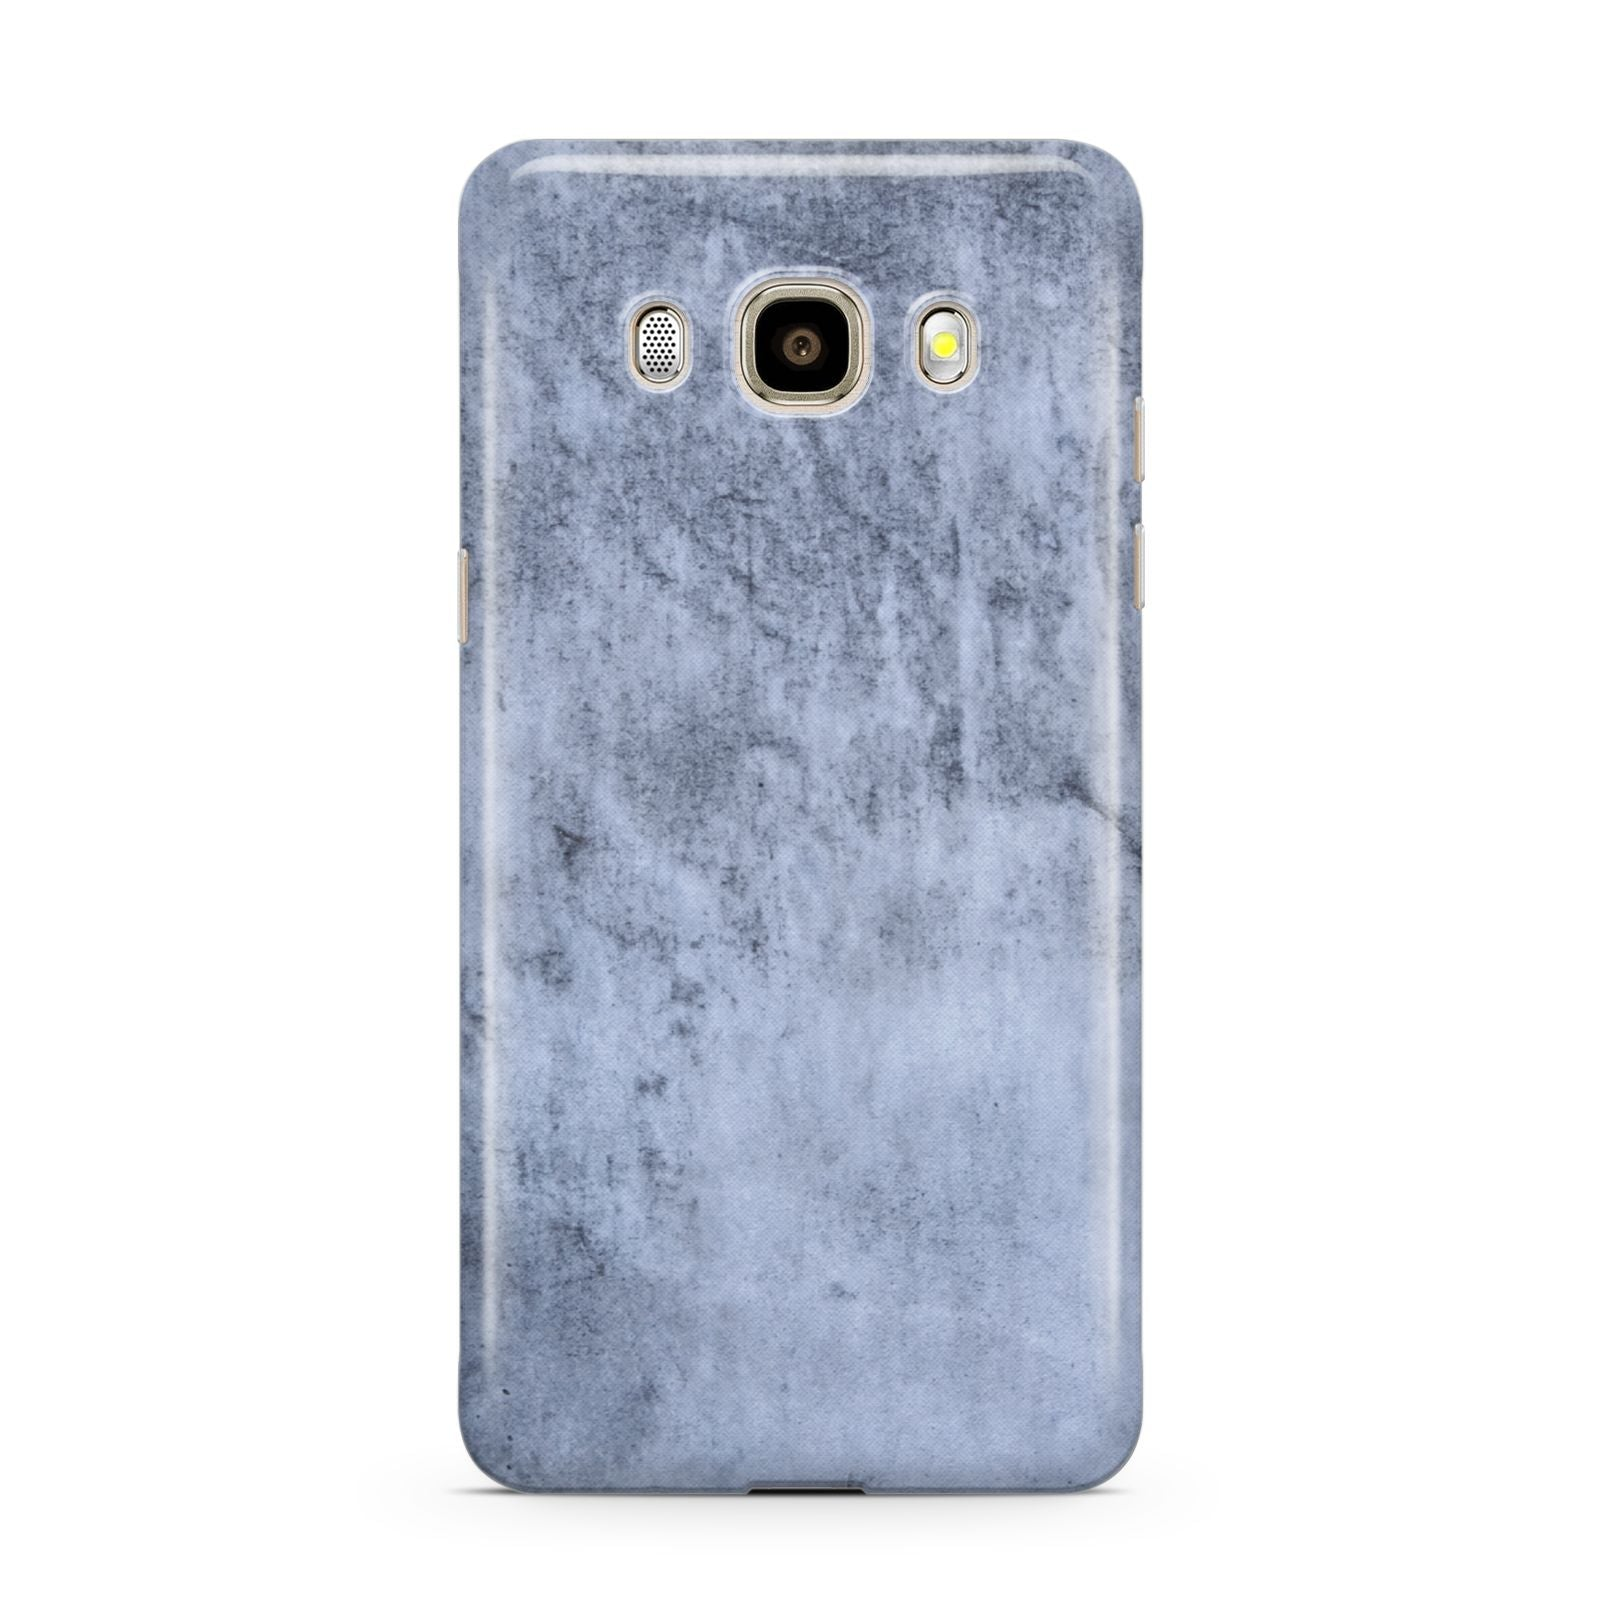 Faux Marble Dark Grey Samsung Galaxy J7 2016 Case on gold phone